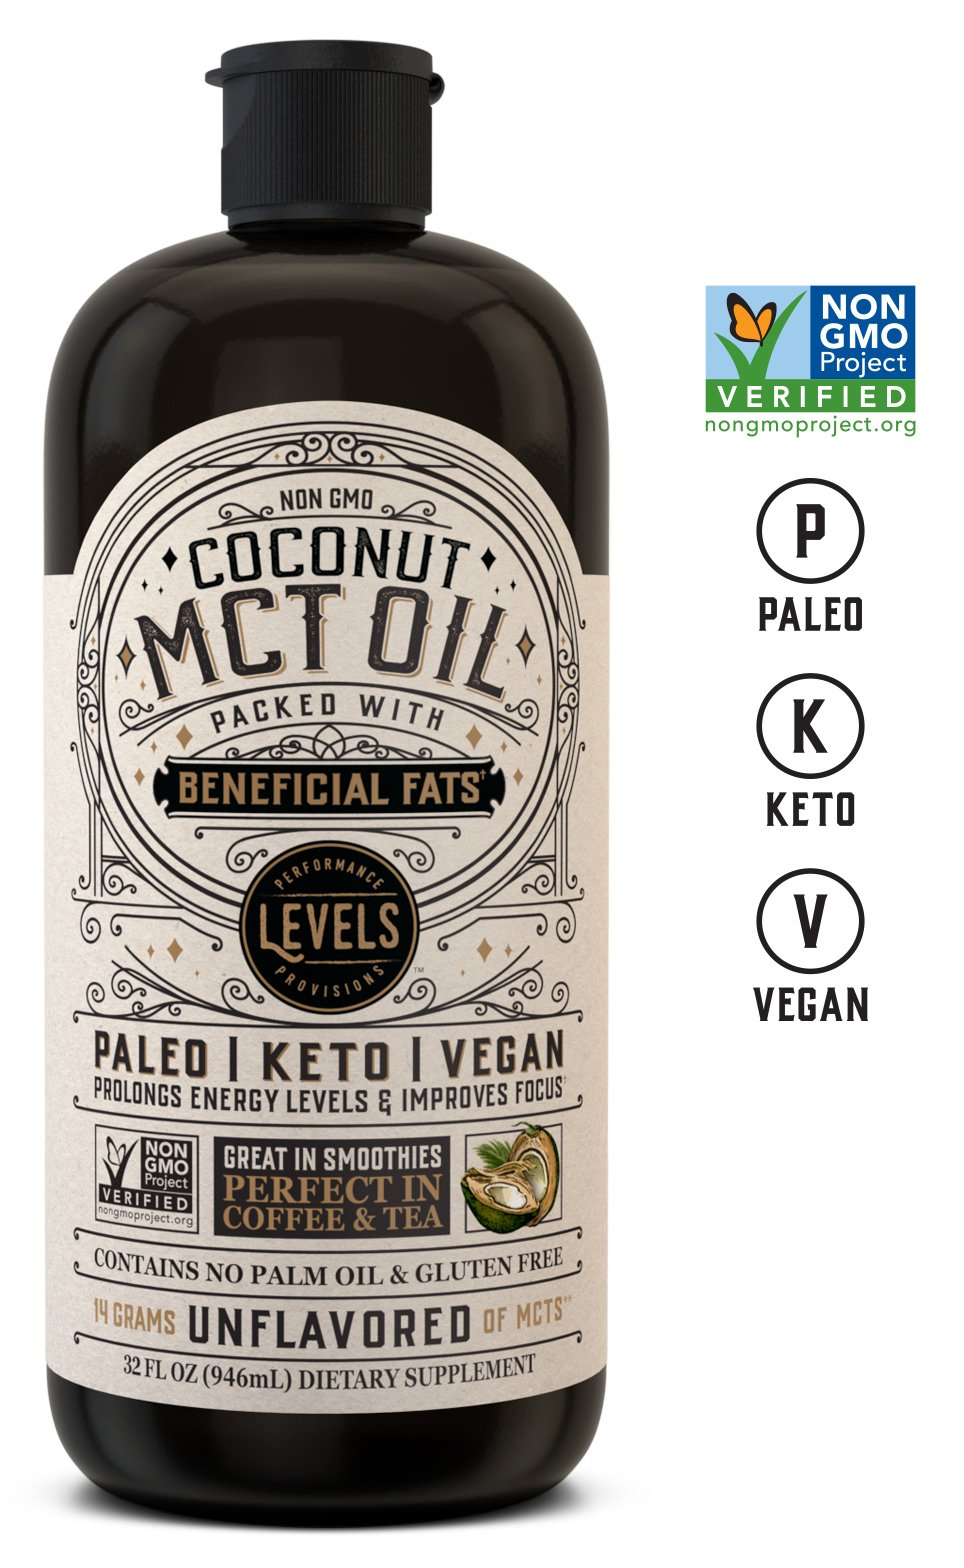 Levels 100% Coconut MCT Oil 32oz, Non-GMO Project Verified, Paleo, Keto, Vegan